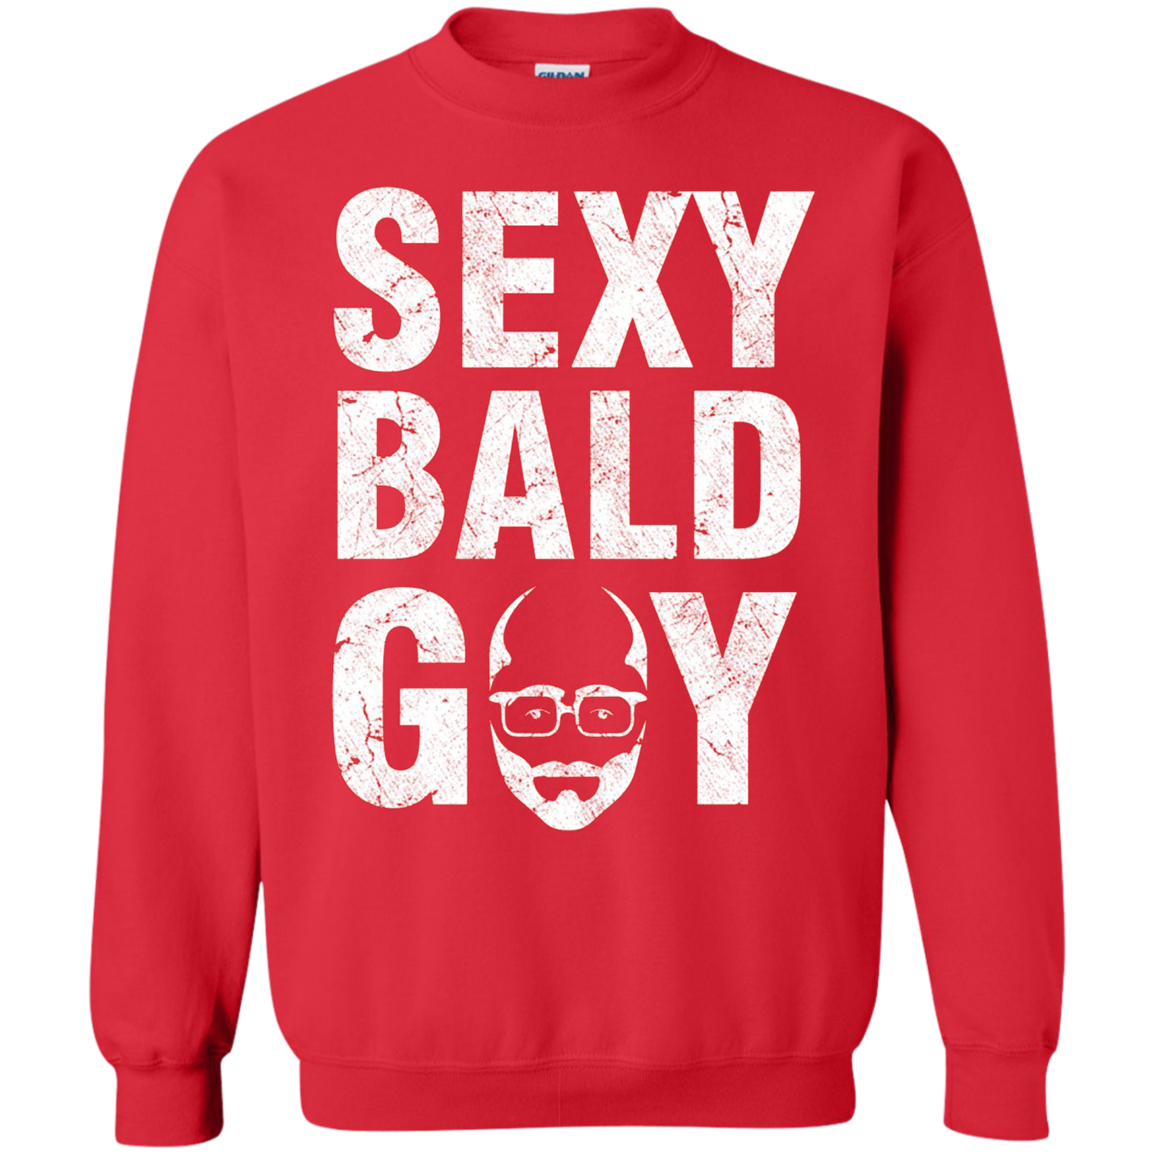 Red Sweater Bald Guy